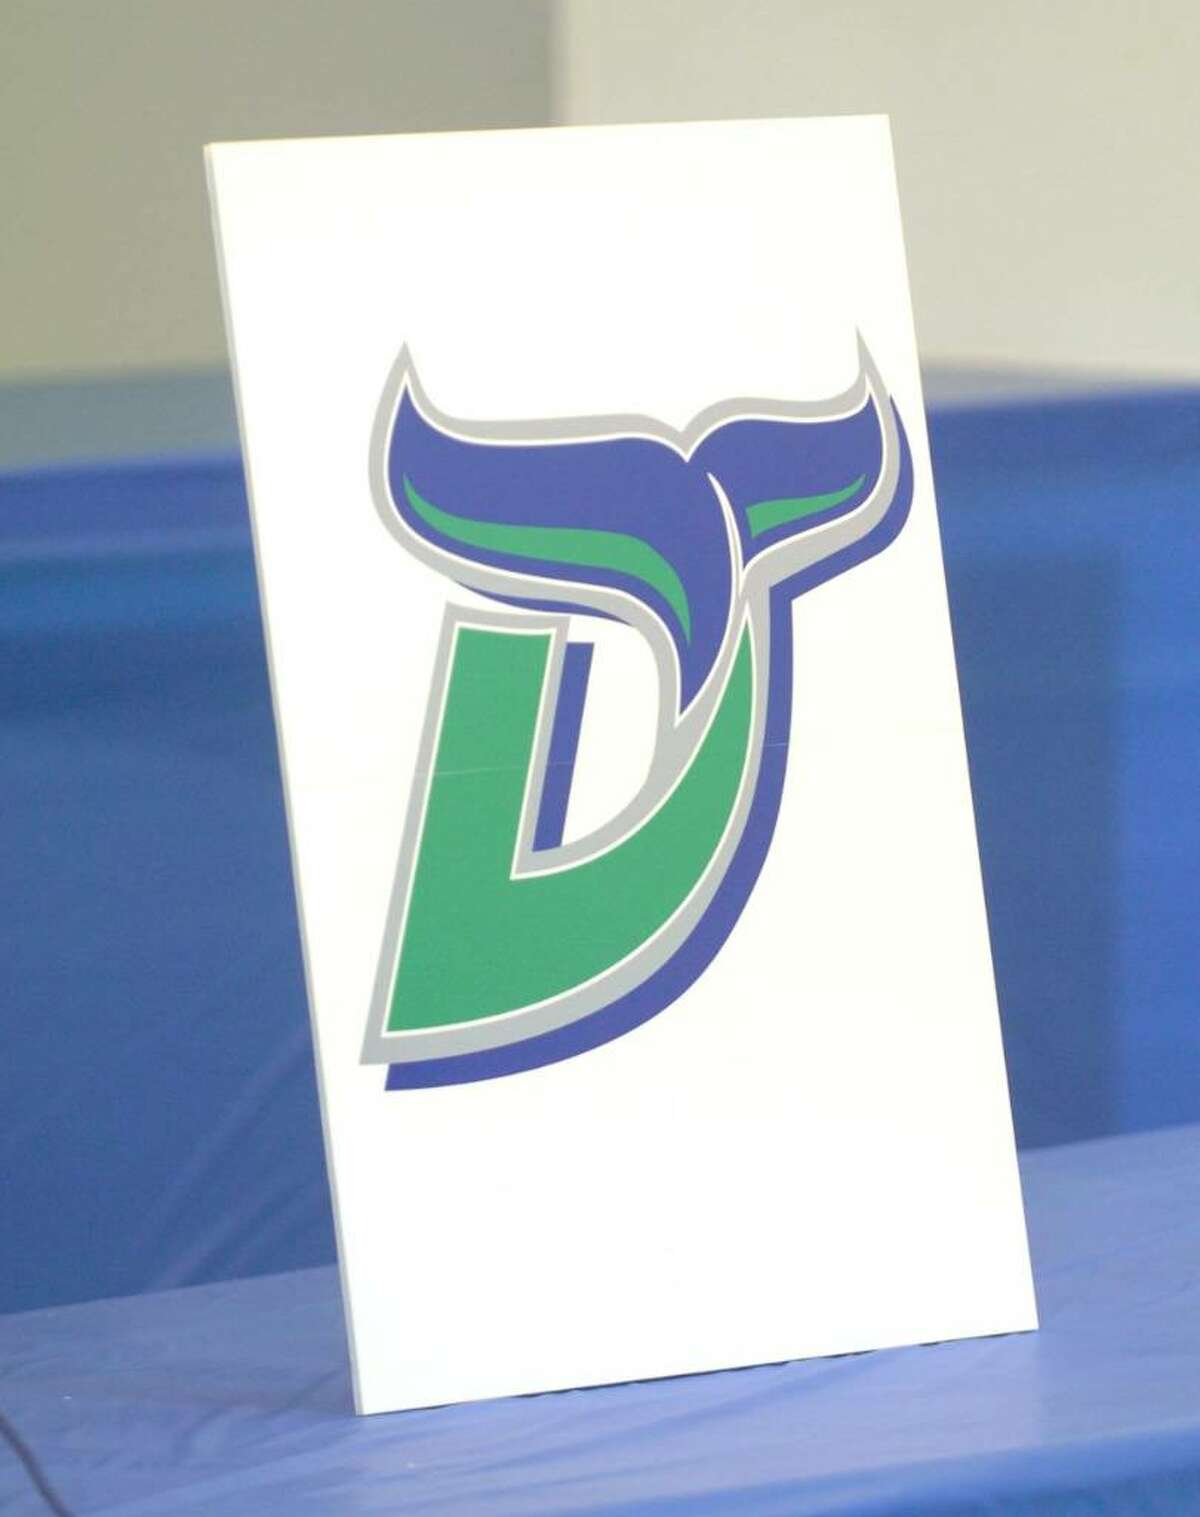 Logos presented at a press confrence for the Danbury Whalers at the Danbury Ice Arena Tuesday, Dec. 29, 2009.